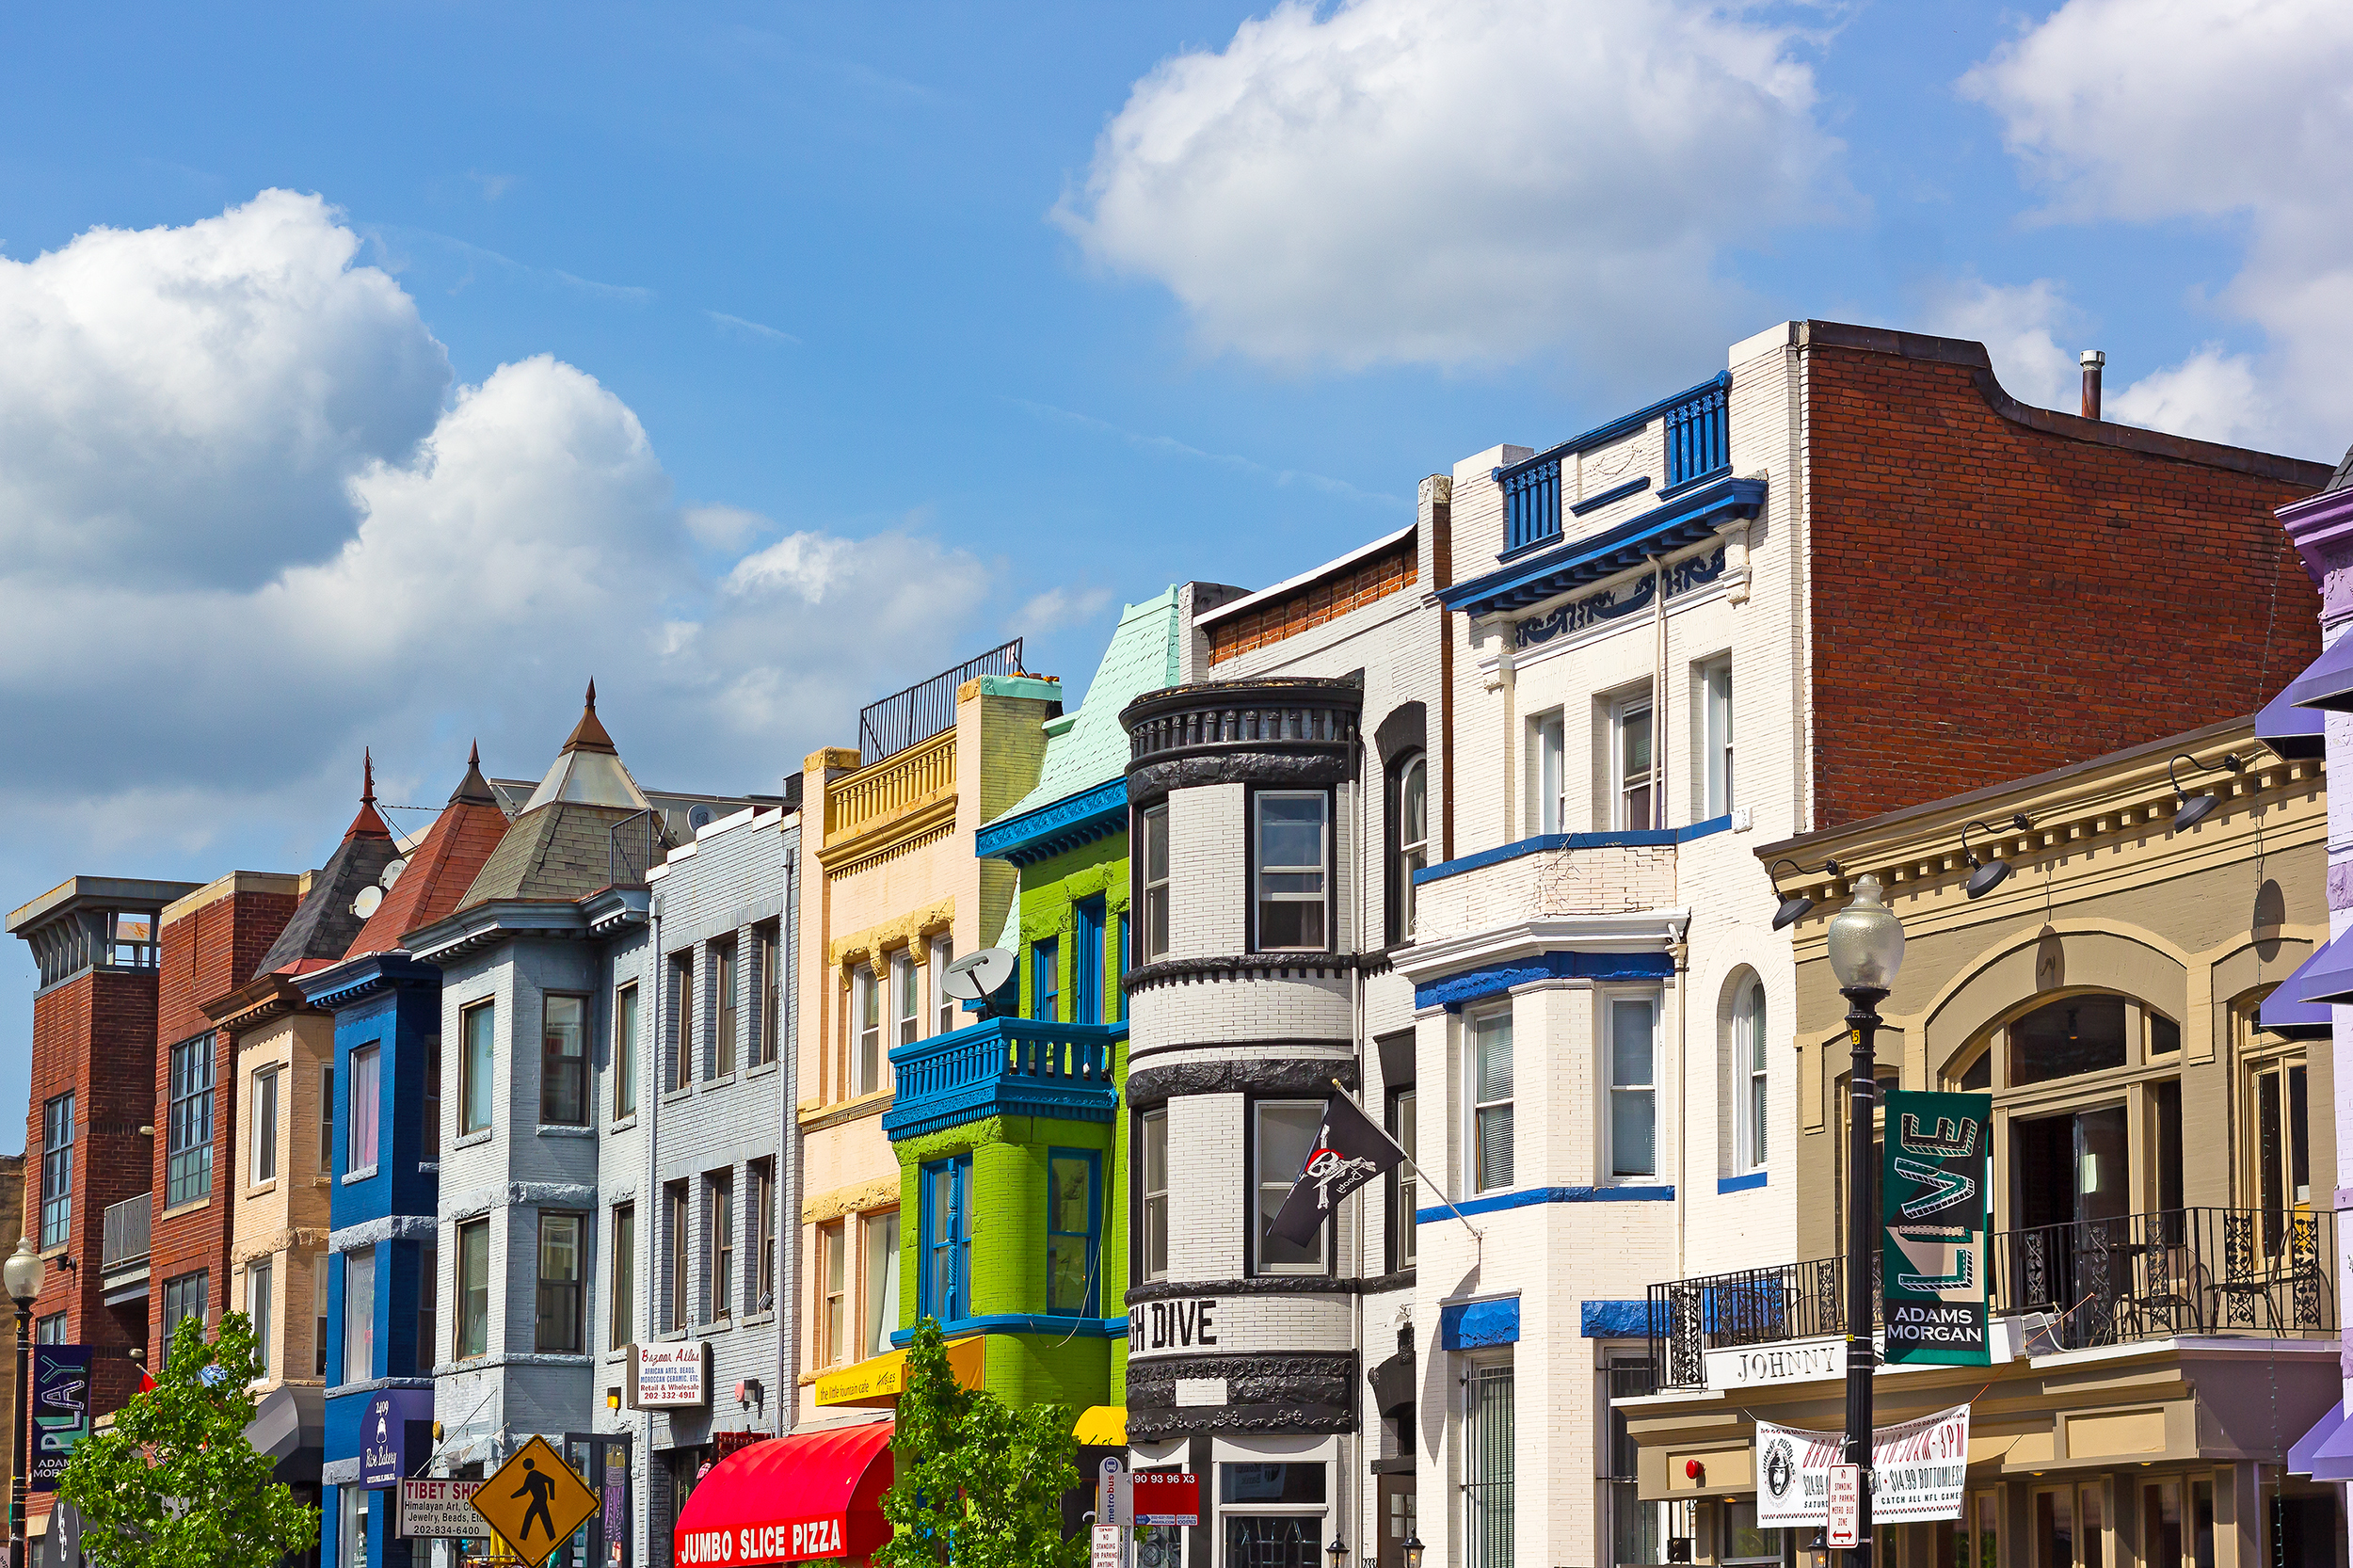 A row of buildings housing businesses on 18th Street NW in Adams Morgan. The buildings are of various colors but most are three stories.